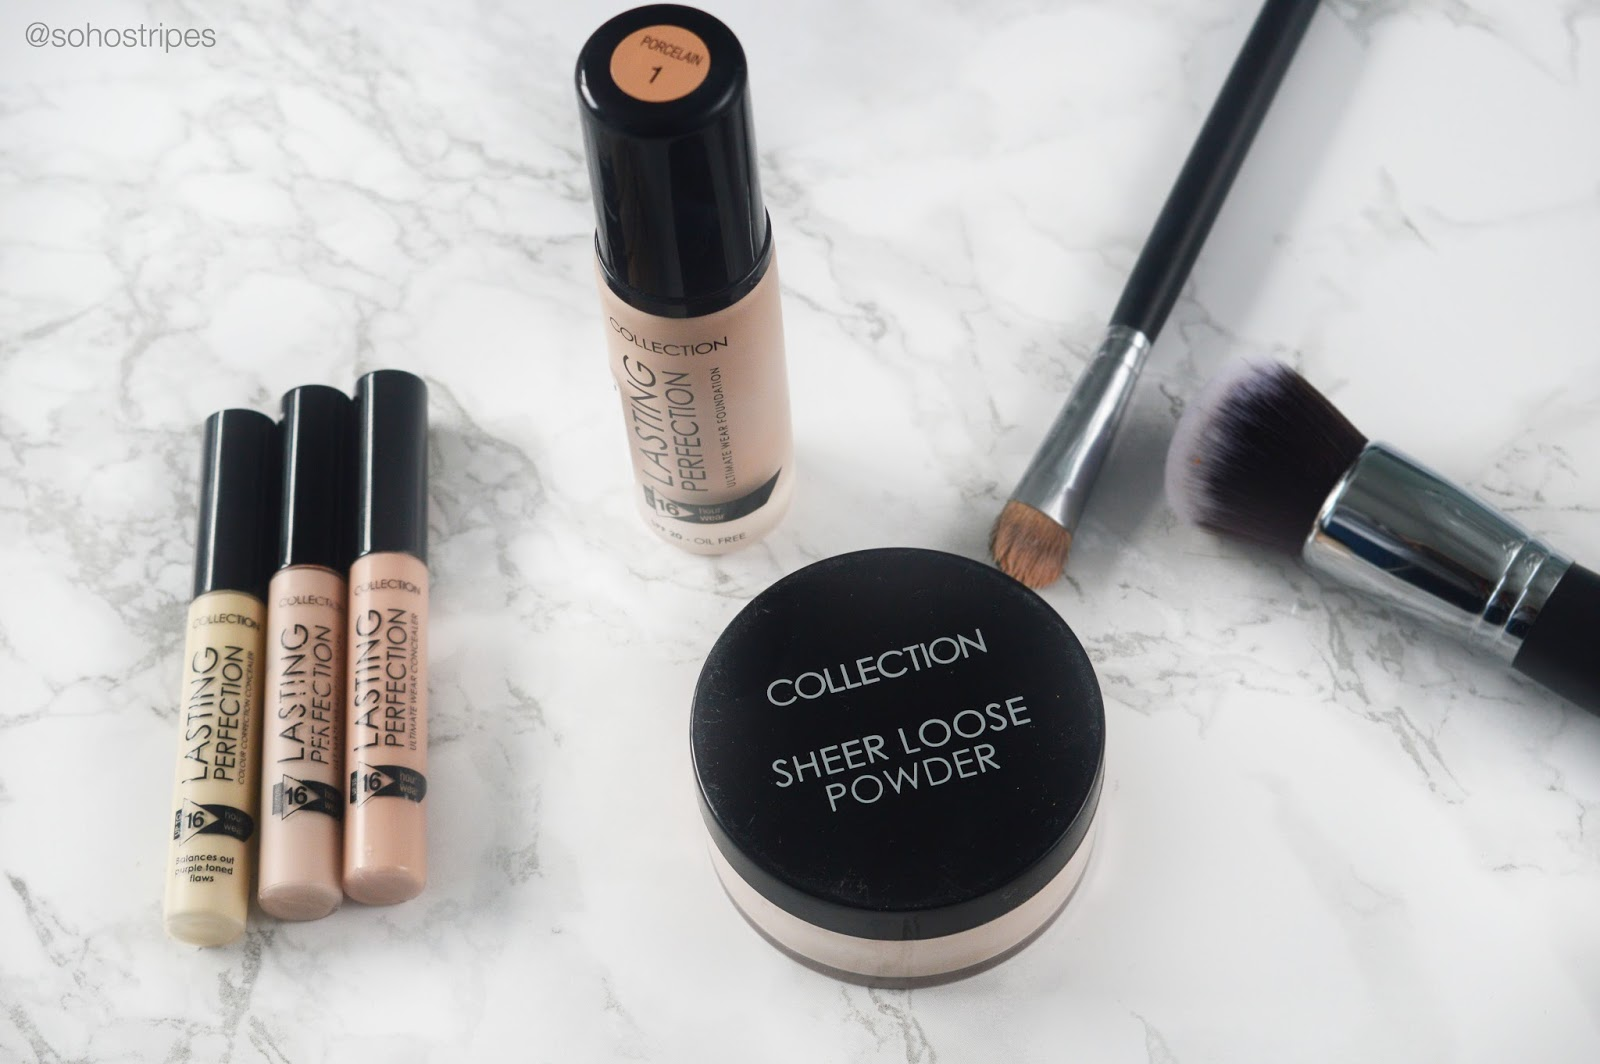 Collection Lasting Perfection Foundation Concealer Sheer Loose Powder